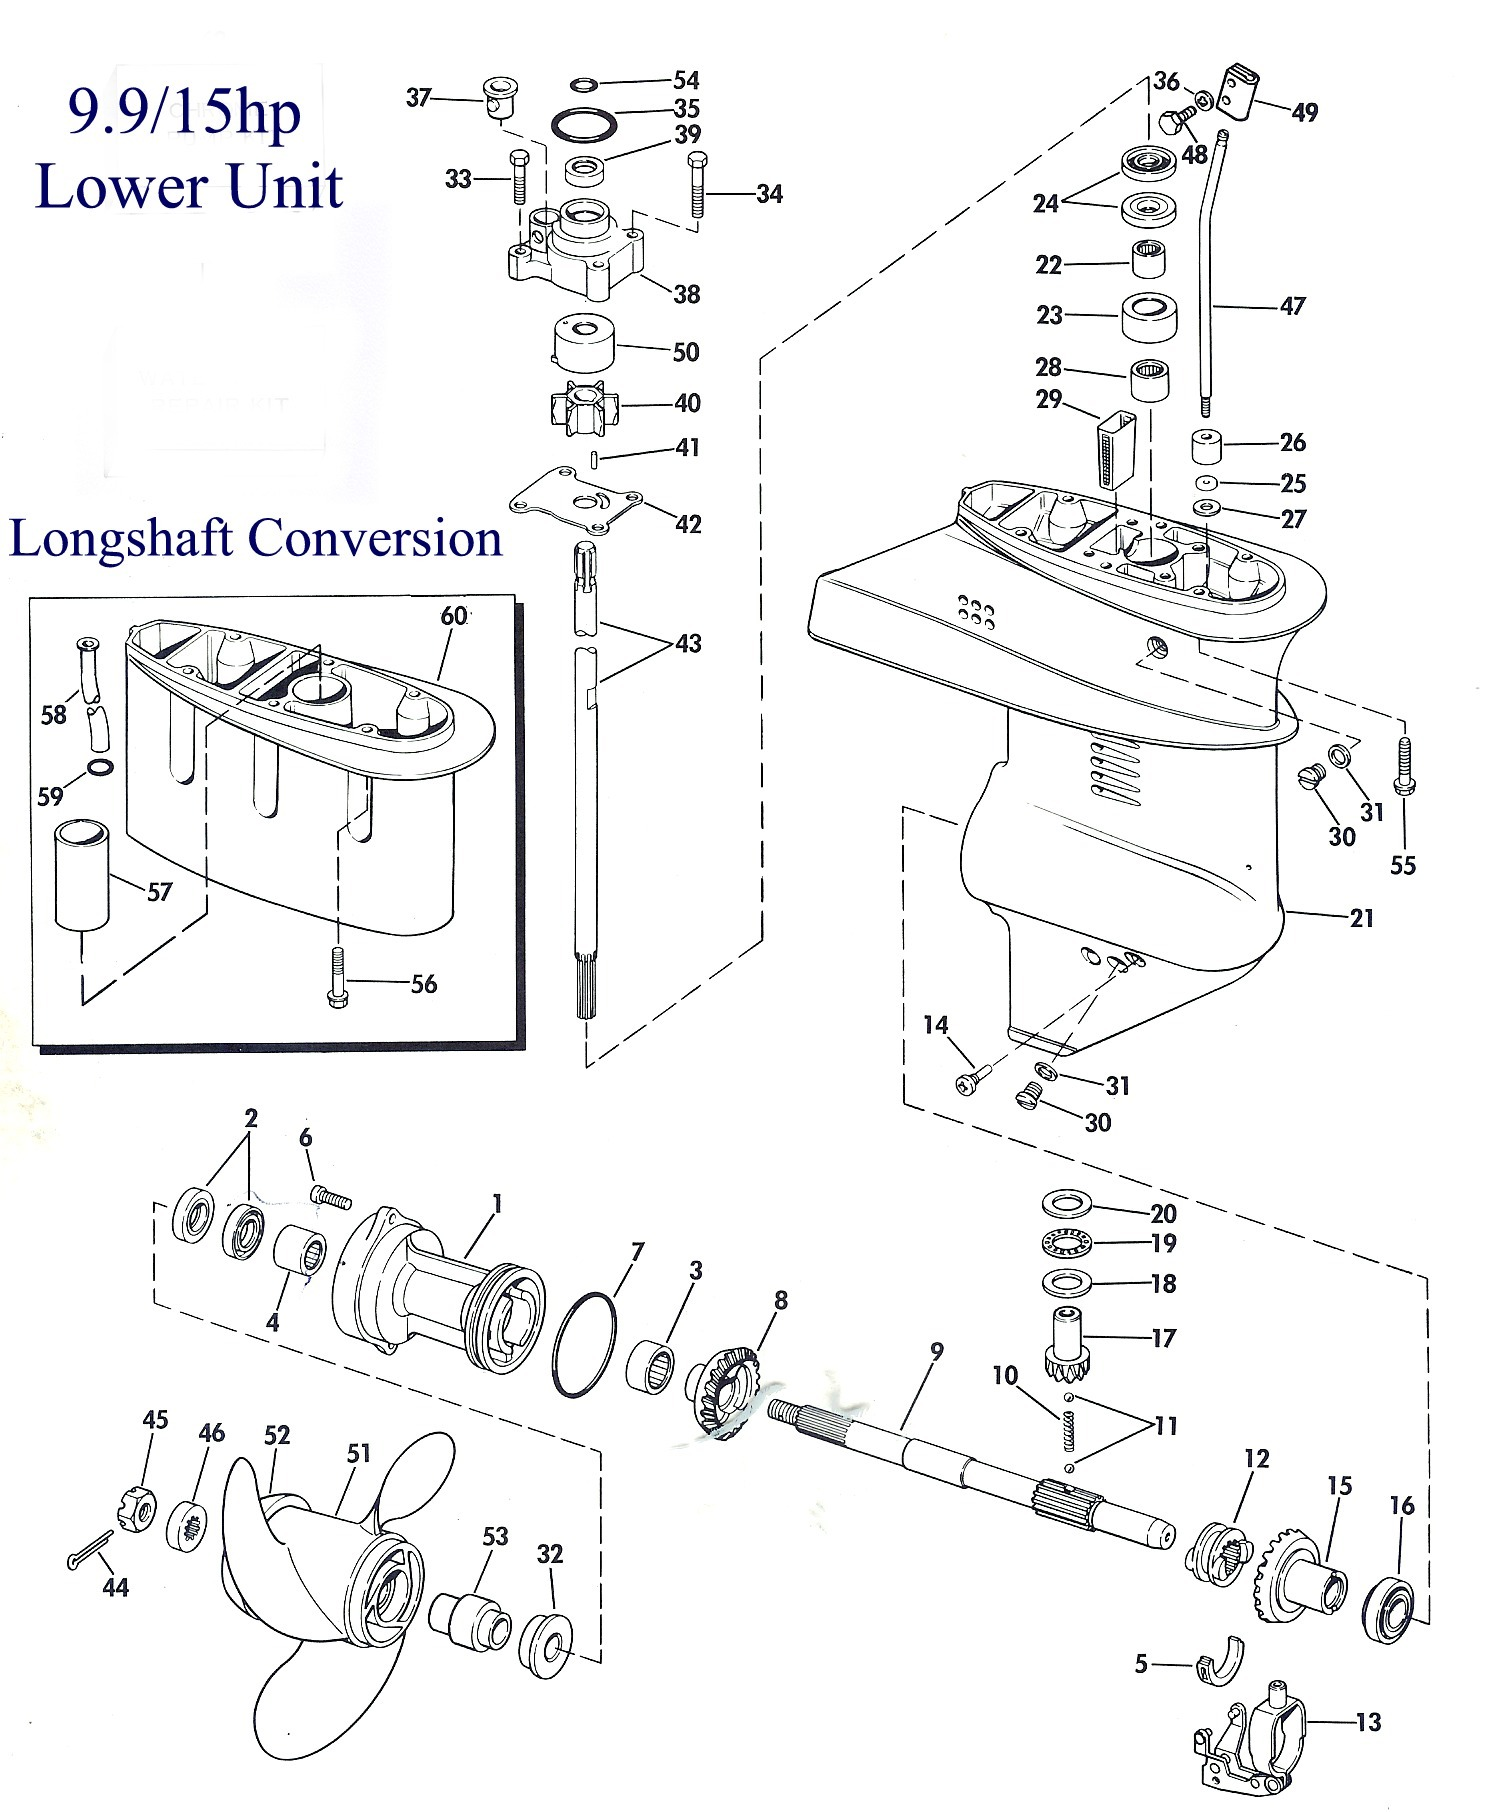 9.9 LU lower unit Johnson Ignition Switch Wiring Diagram at reclaimingppi.co